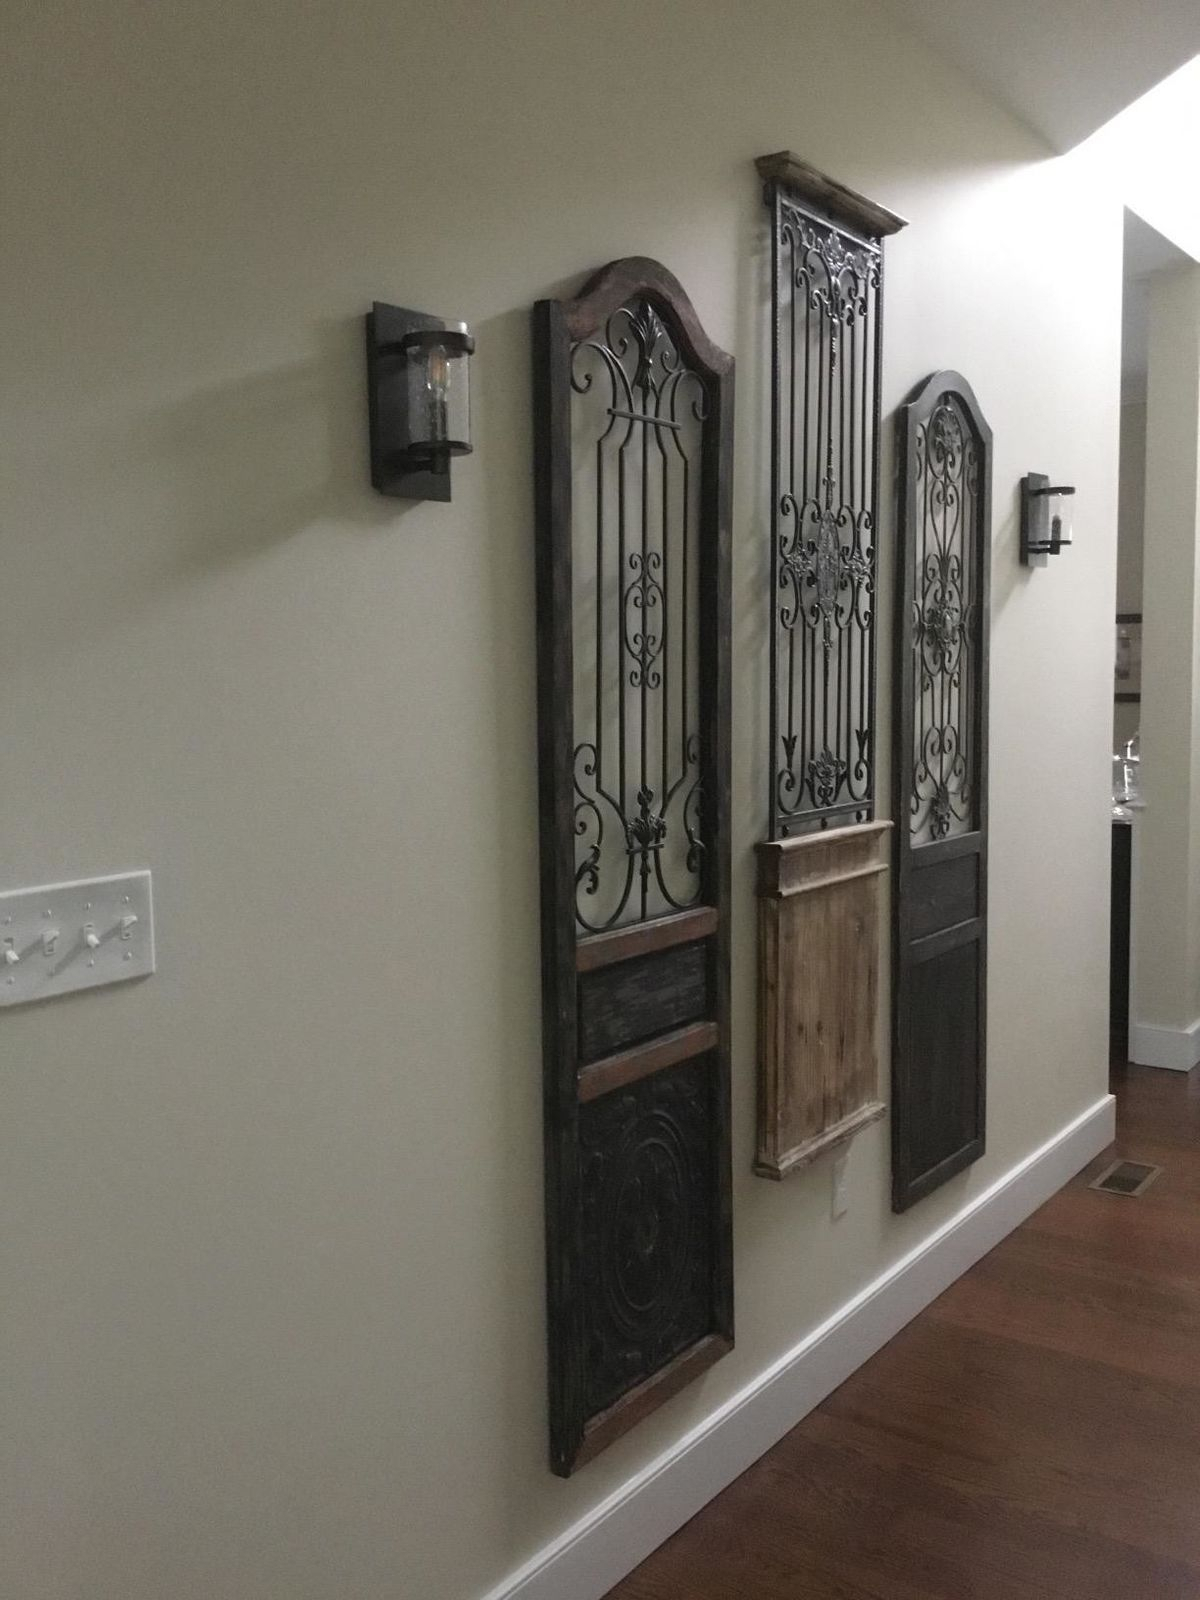 Iron Scroll Work Wood Wall Decor Garden Rustic Arched Inside Scroll Panel Wall Decor (View 9 of 30)